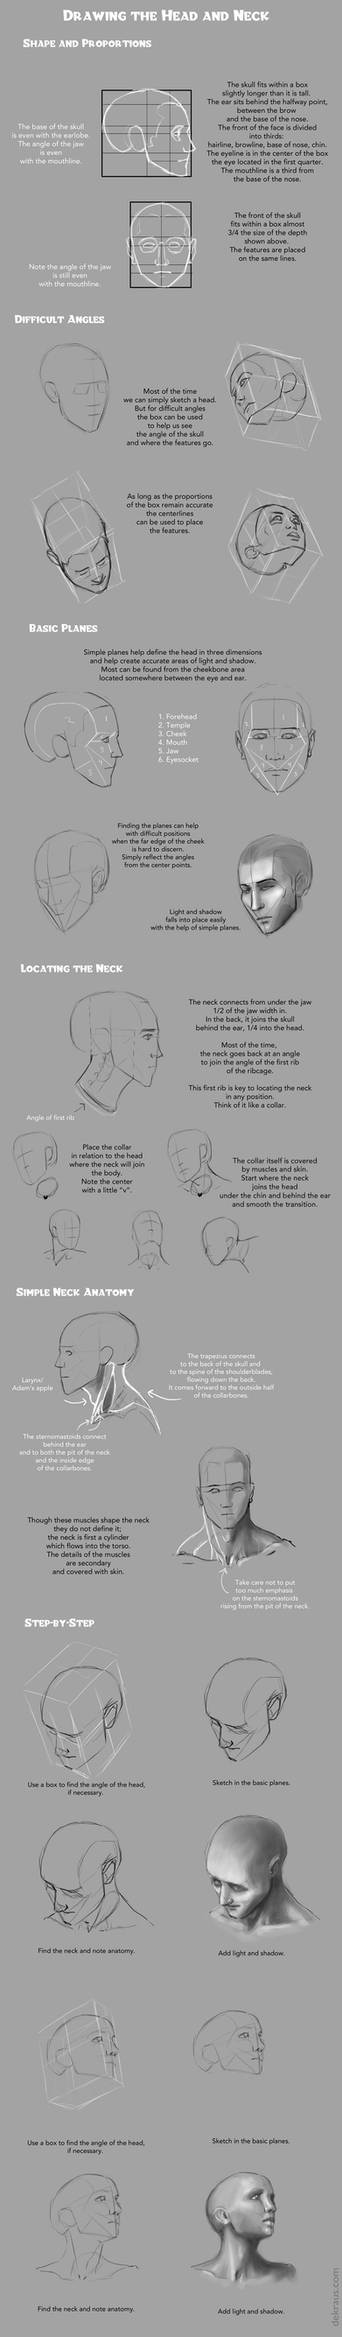 Drawing Heads and Necks Tutorial